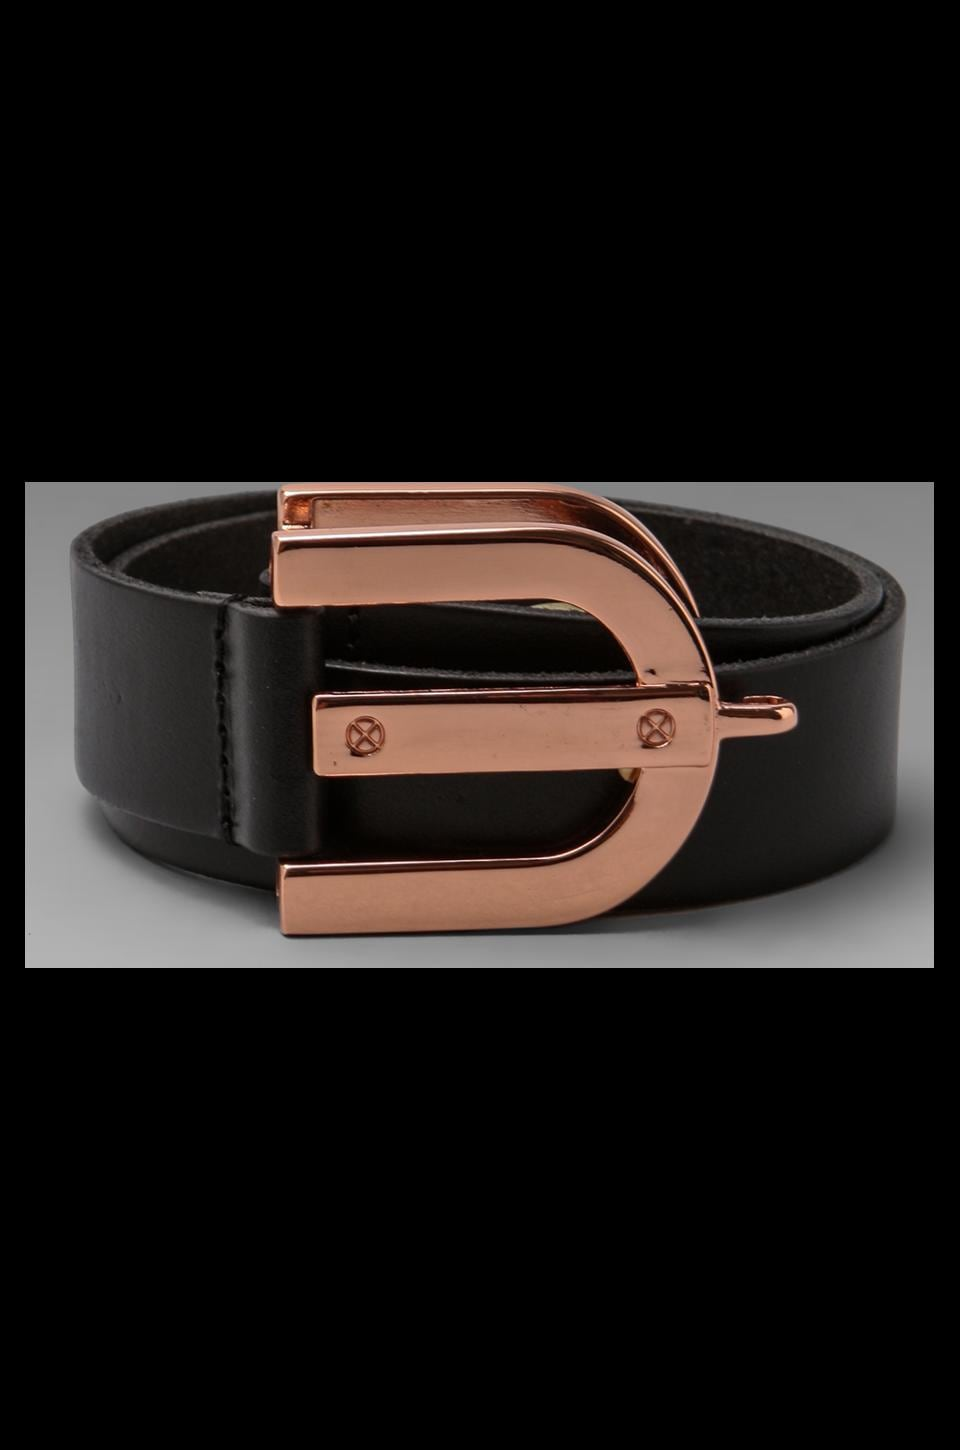 Linea Pelle Avery Waist with Horseshoe Closure Belt in Black/Rose Gold